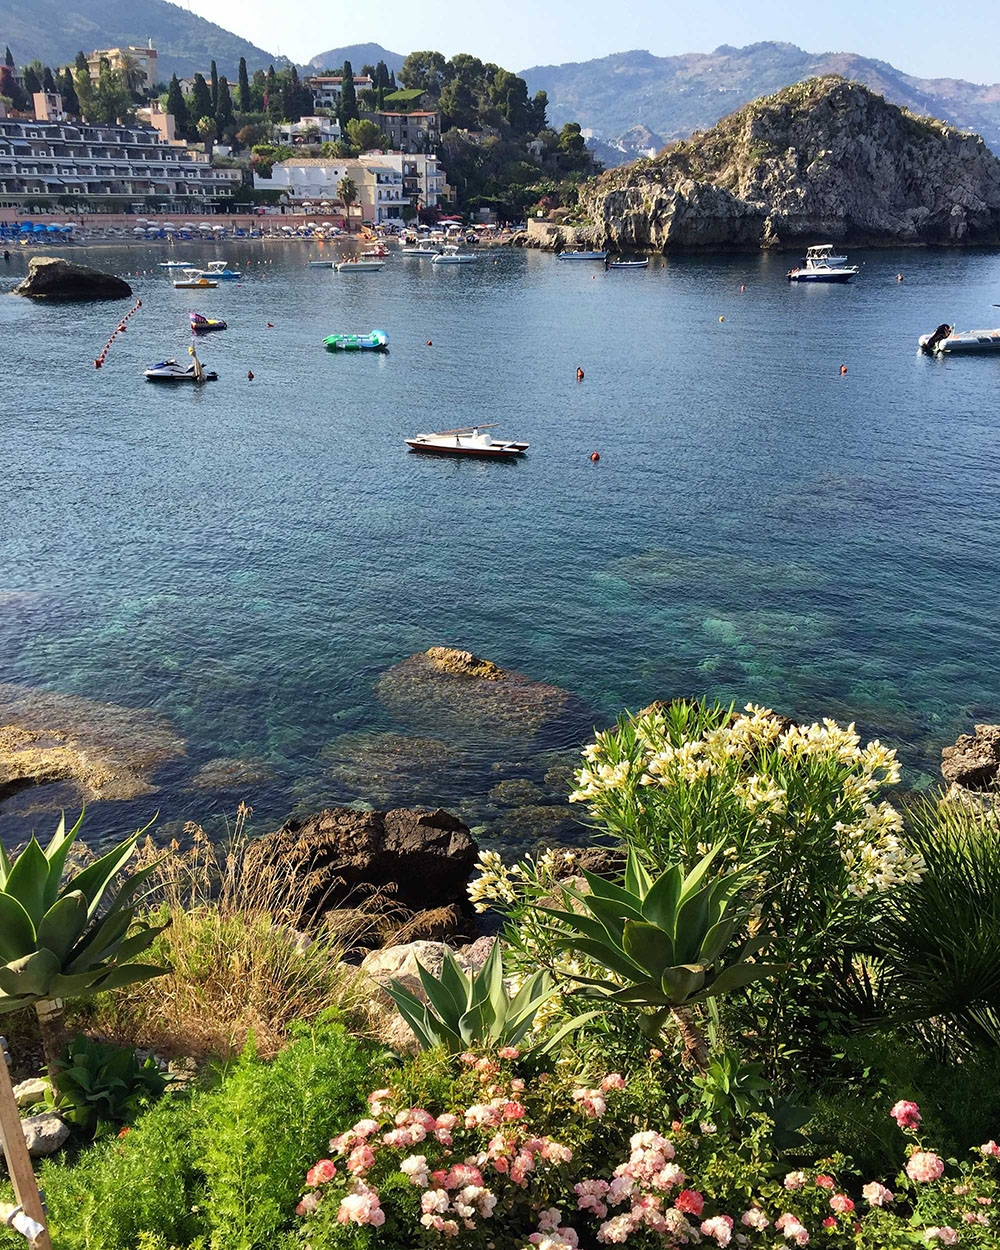 The clear sea and surrounding mountains of Taormina Mare